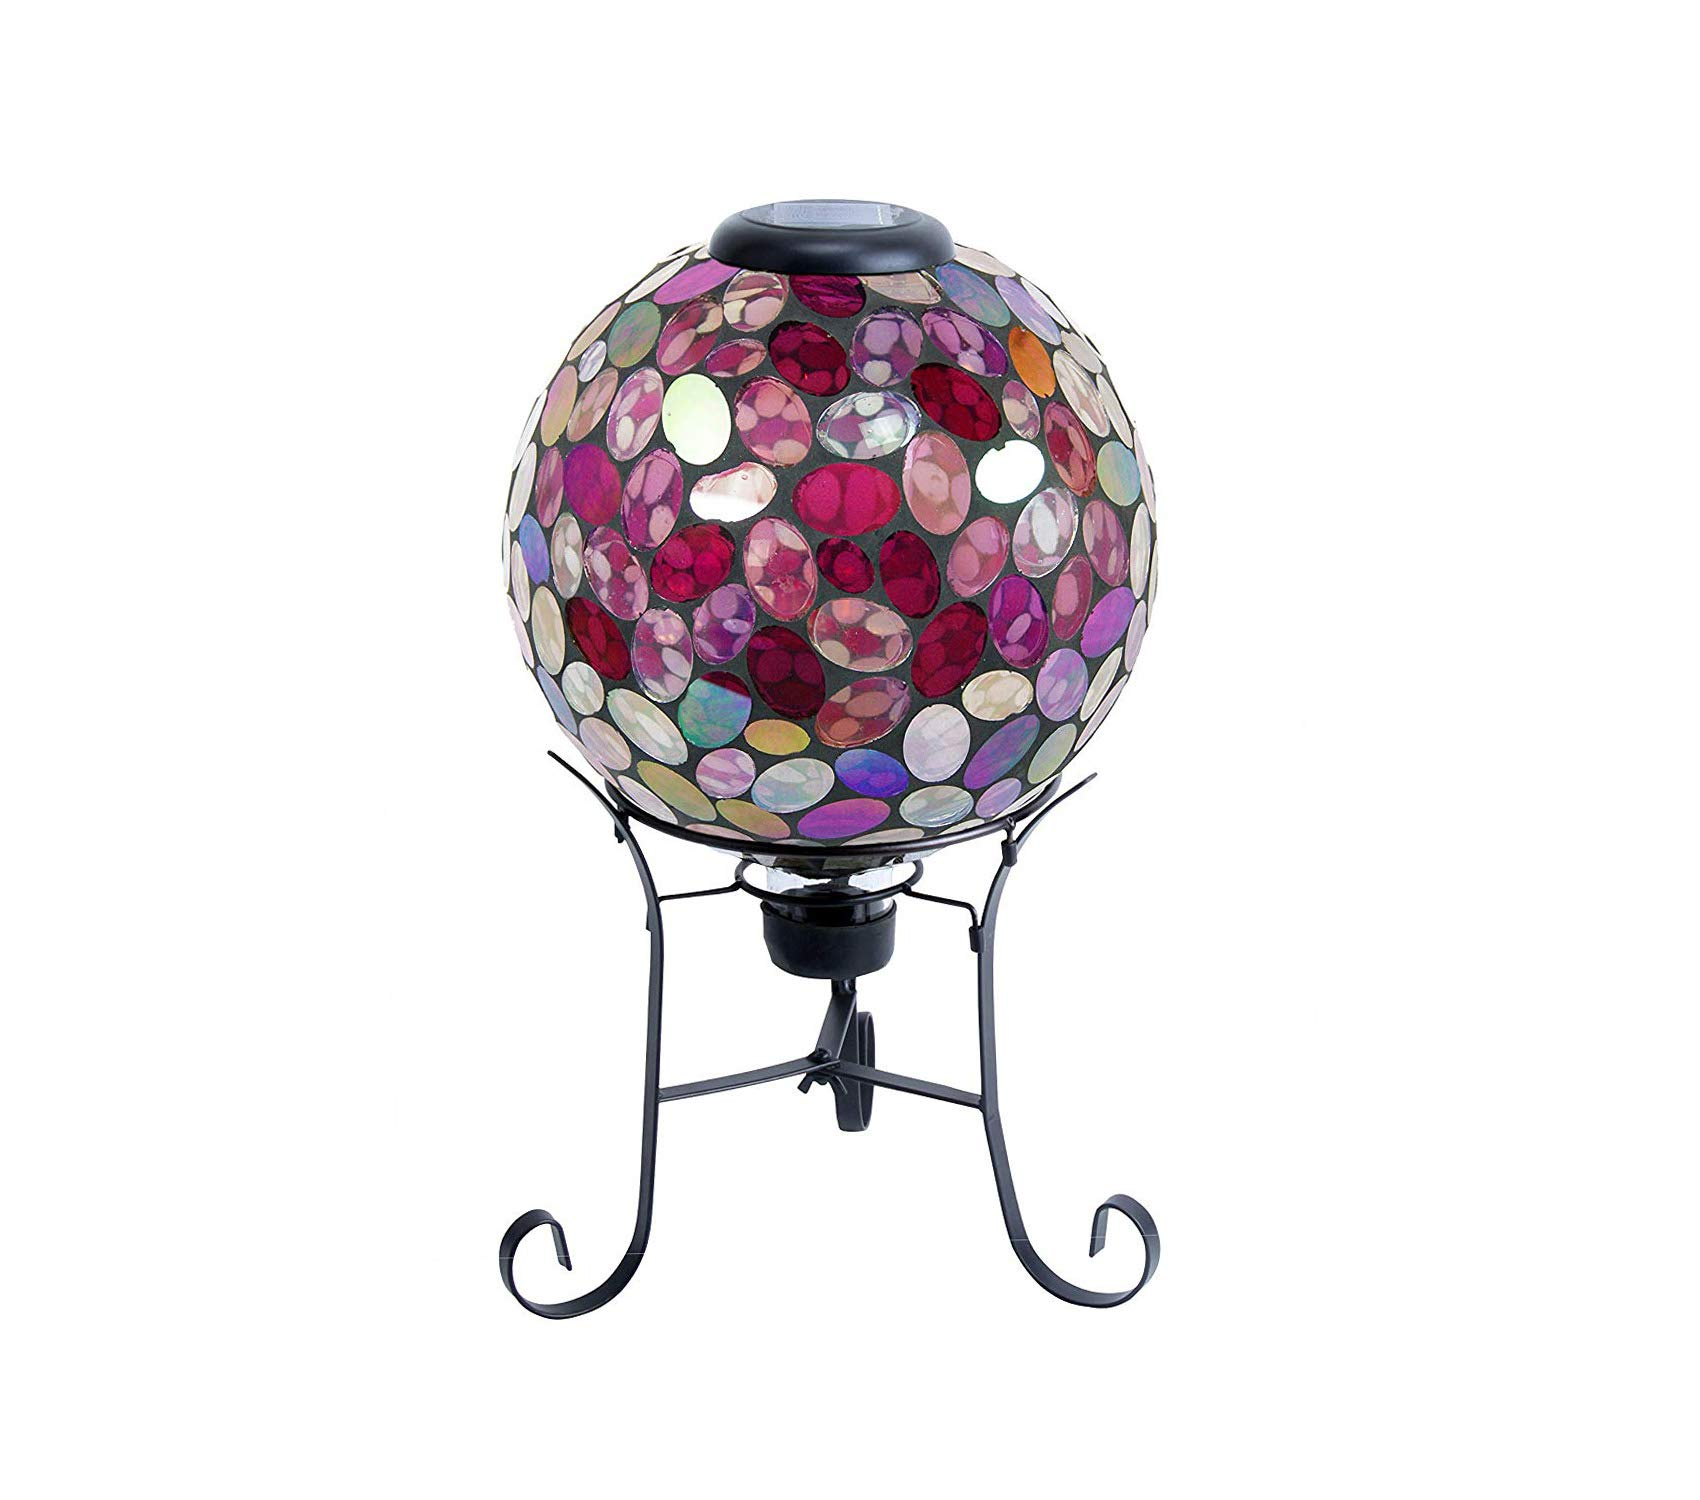 Outdoor Garden Backyard Décor Corporation Solar Gazing Globe with LED Lights - Mosaic Sphere with Metal Stand - Outdoor Yard Art Decor - Violet - 10'' x 10'' x 17''